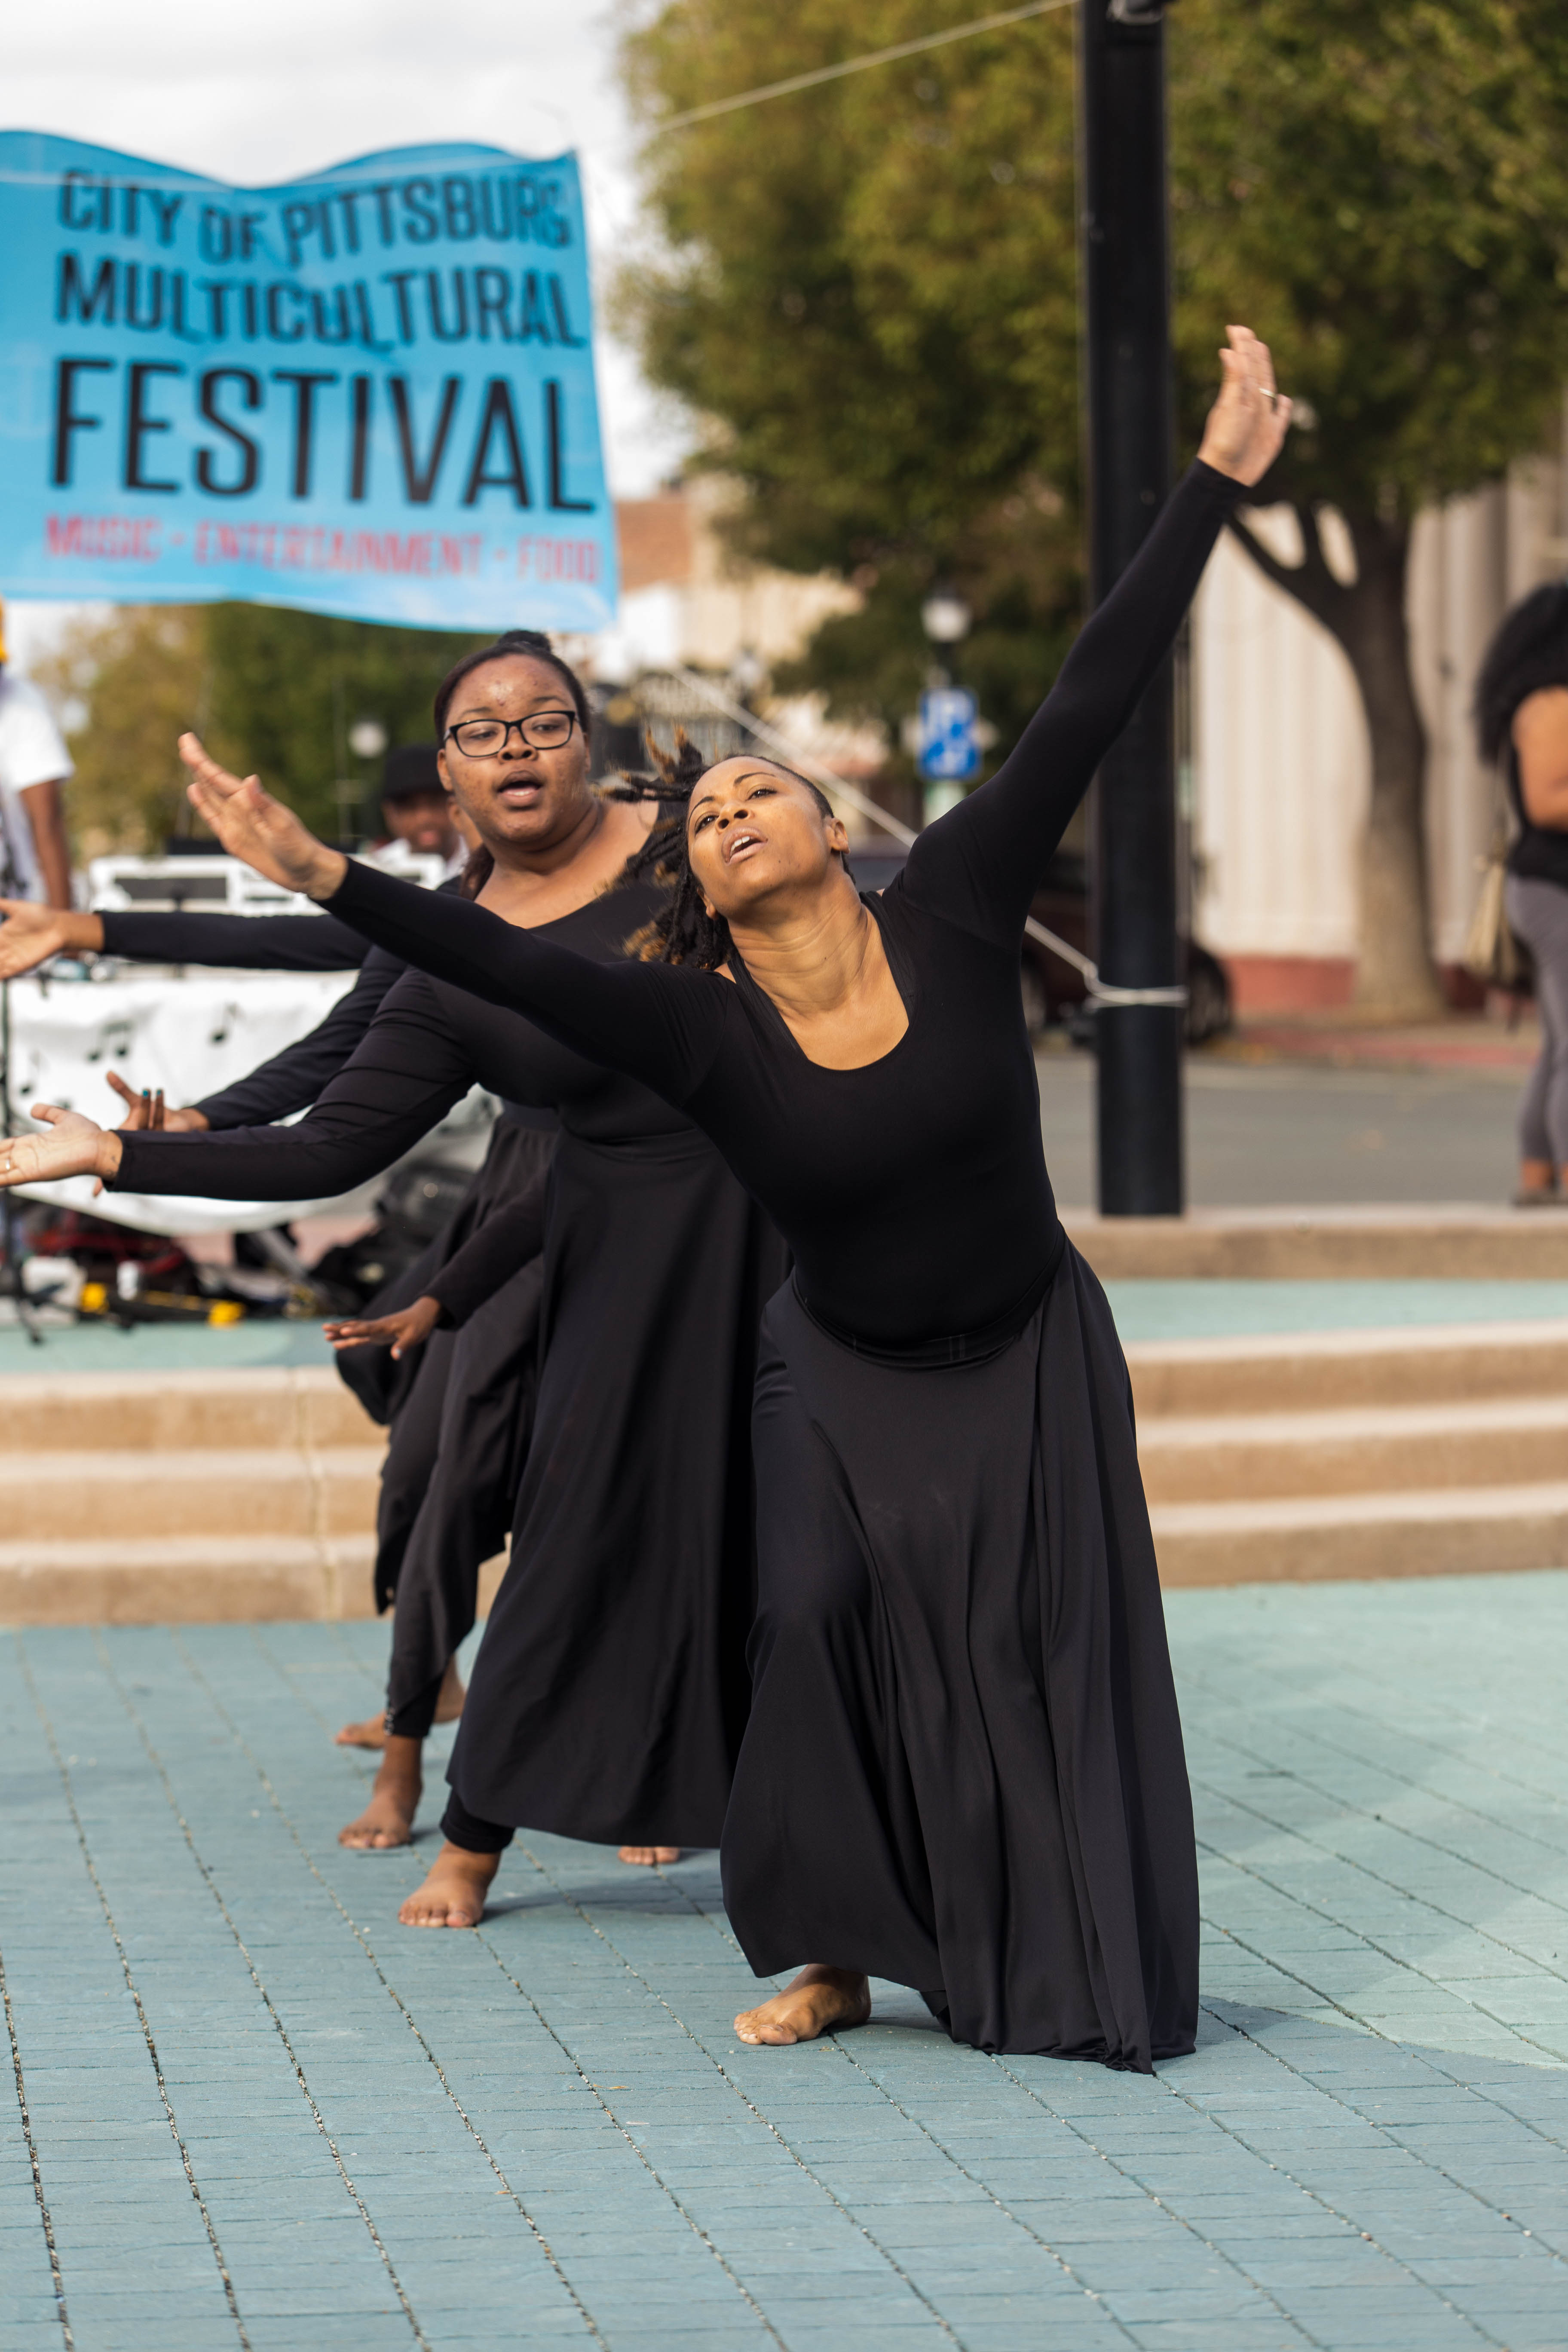 CITY_PITTSBURG_MULTICULTURAL_OCTOBER_2016 (774)